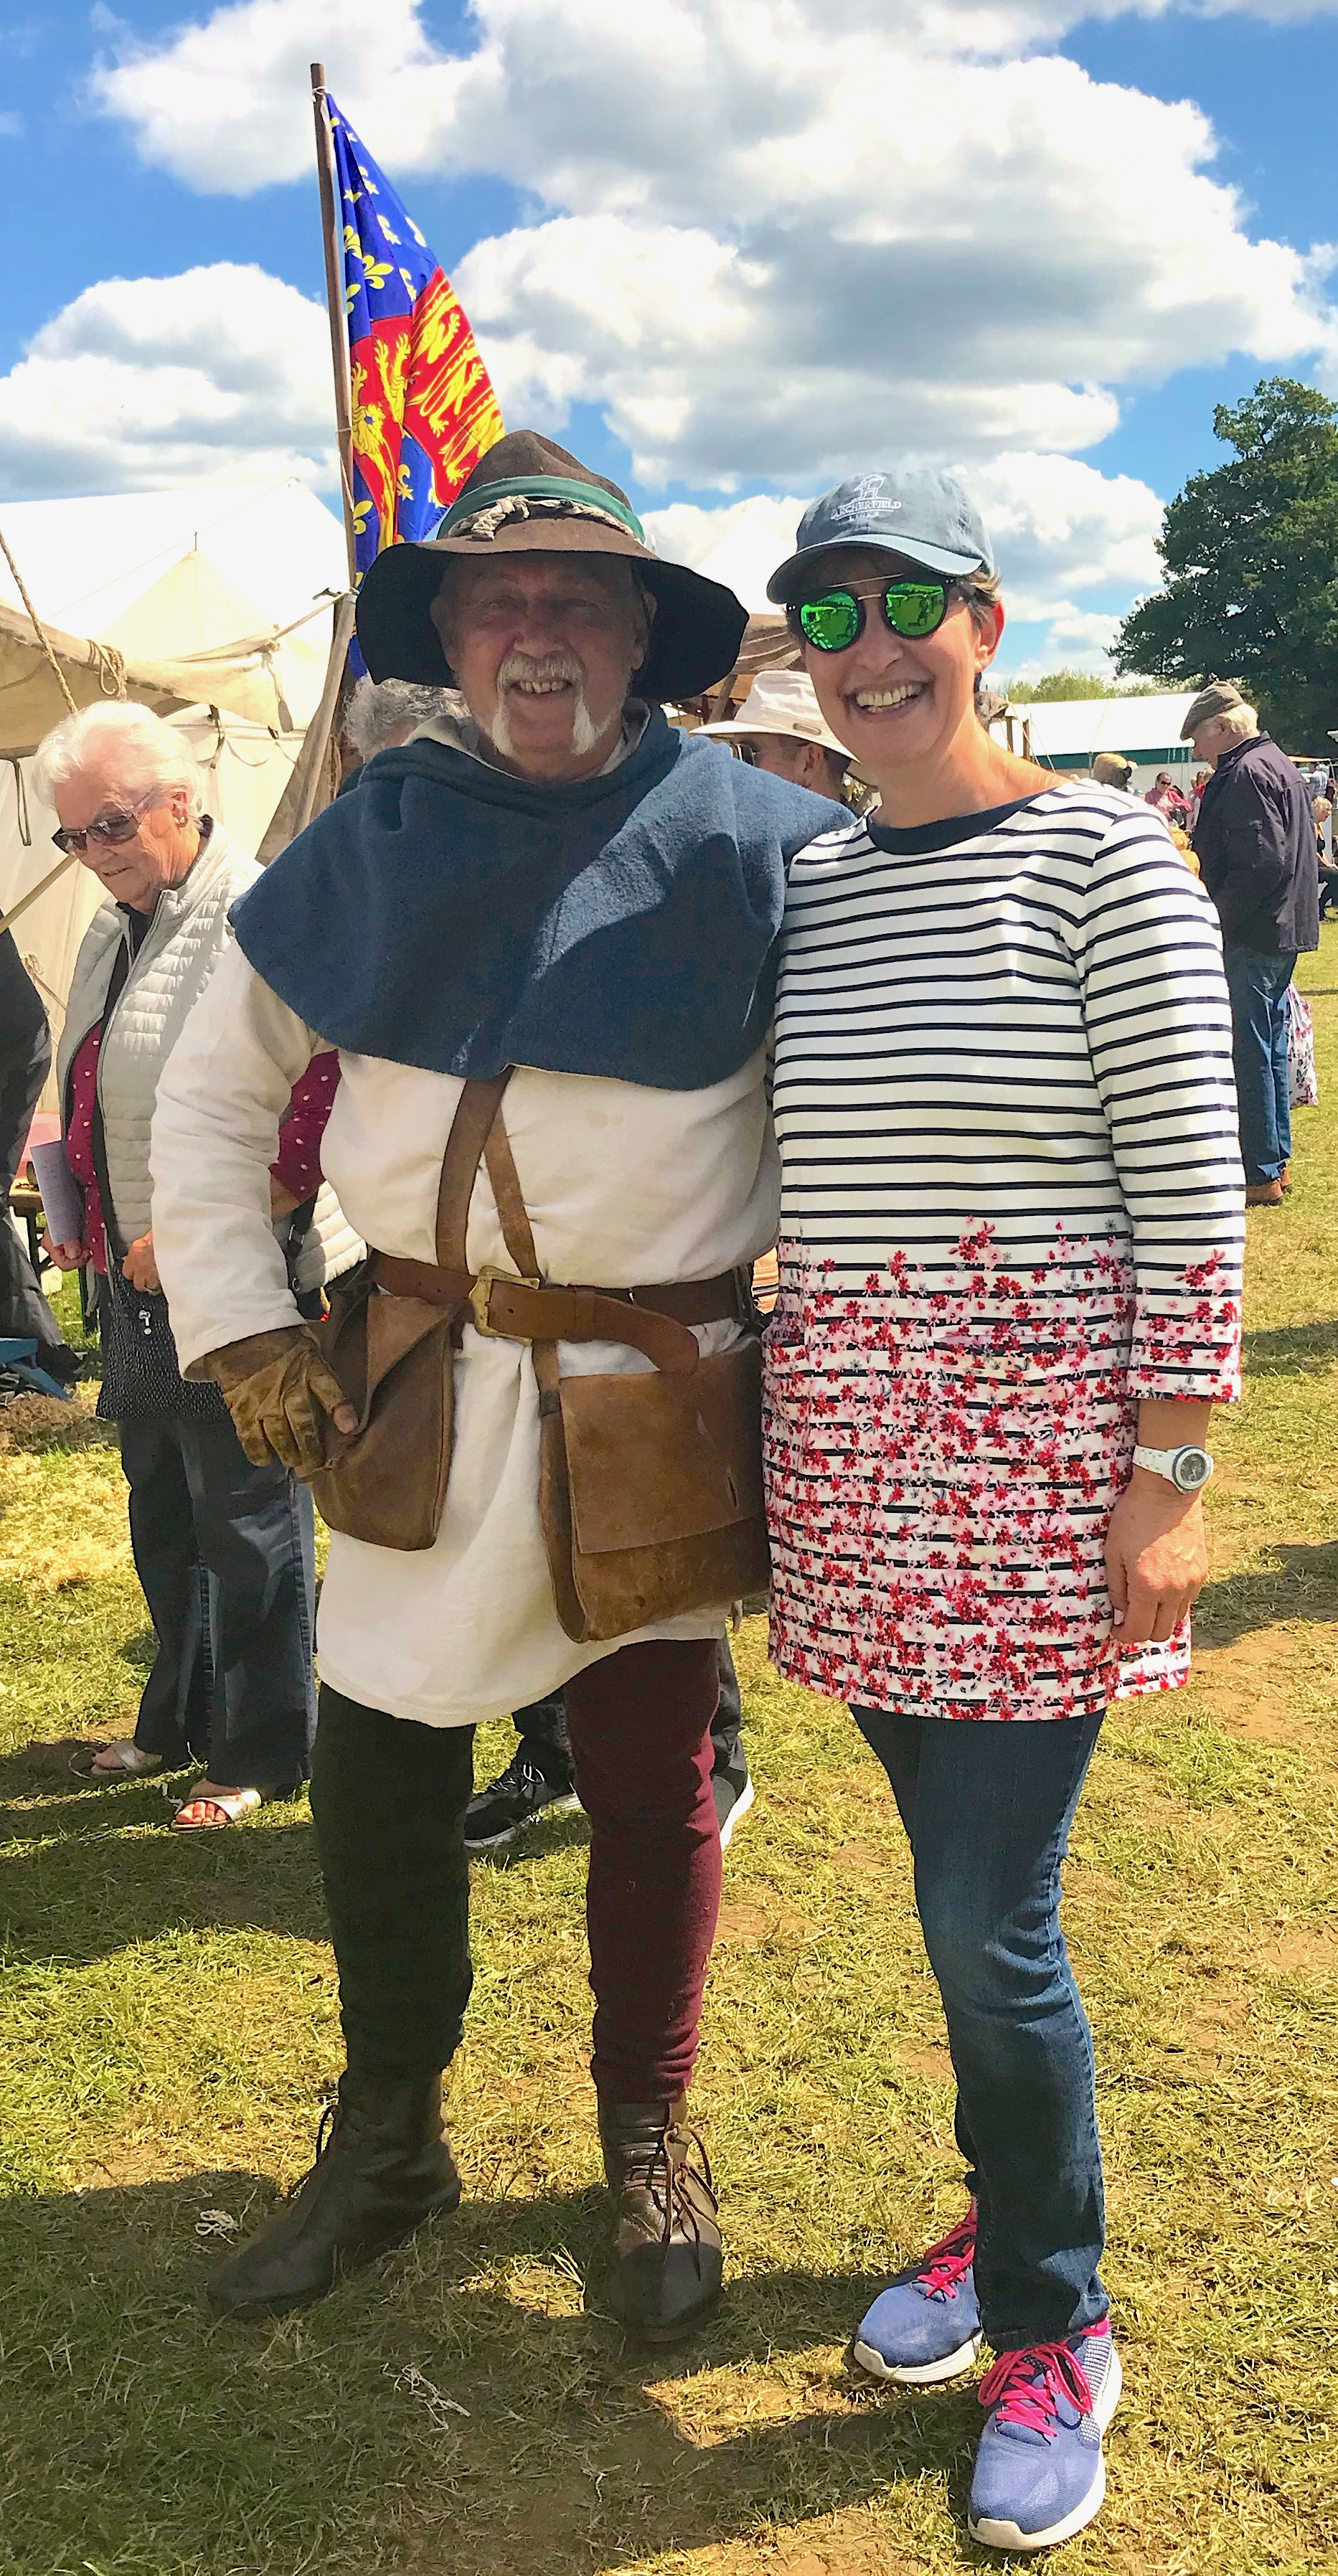 I met John at the Living Crafts fair at Hatfield House. Exactly as he would have hoped, it was the way he was dressed that made me want to know more about him!